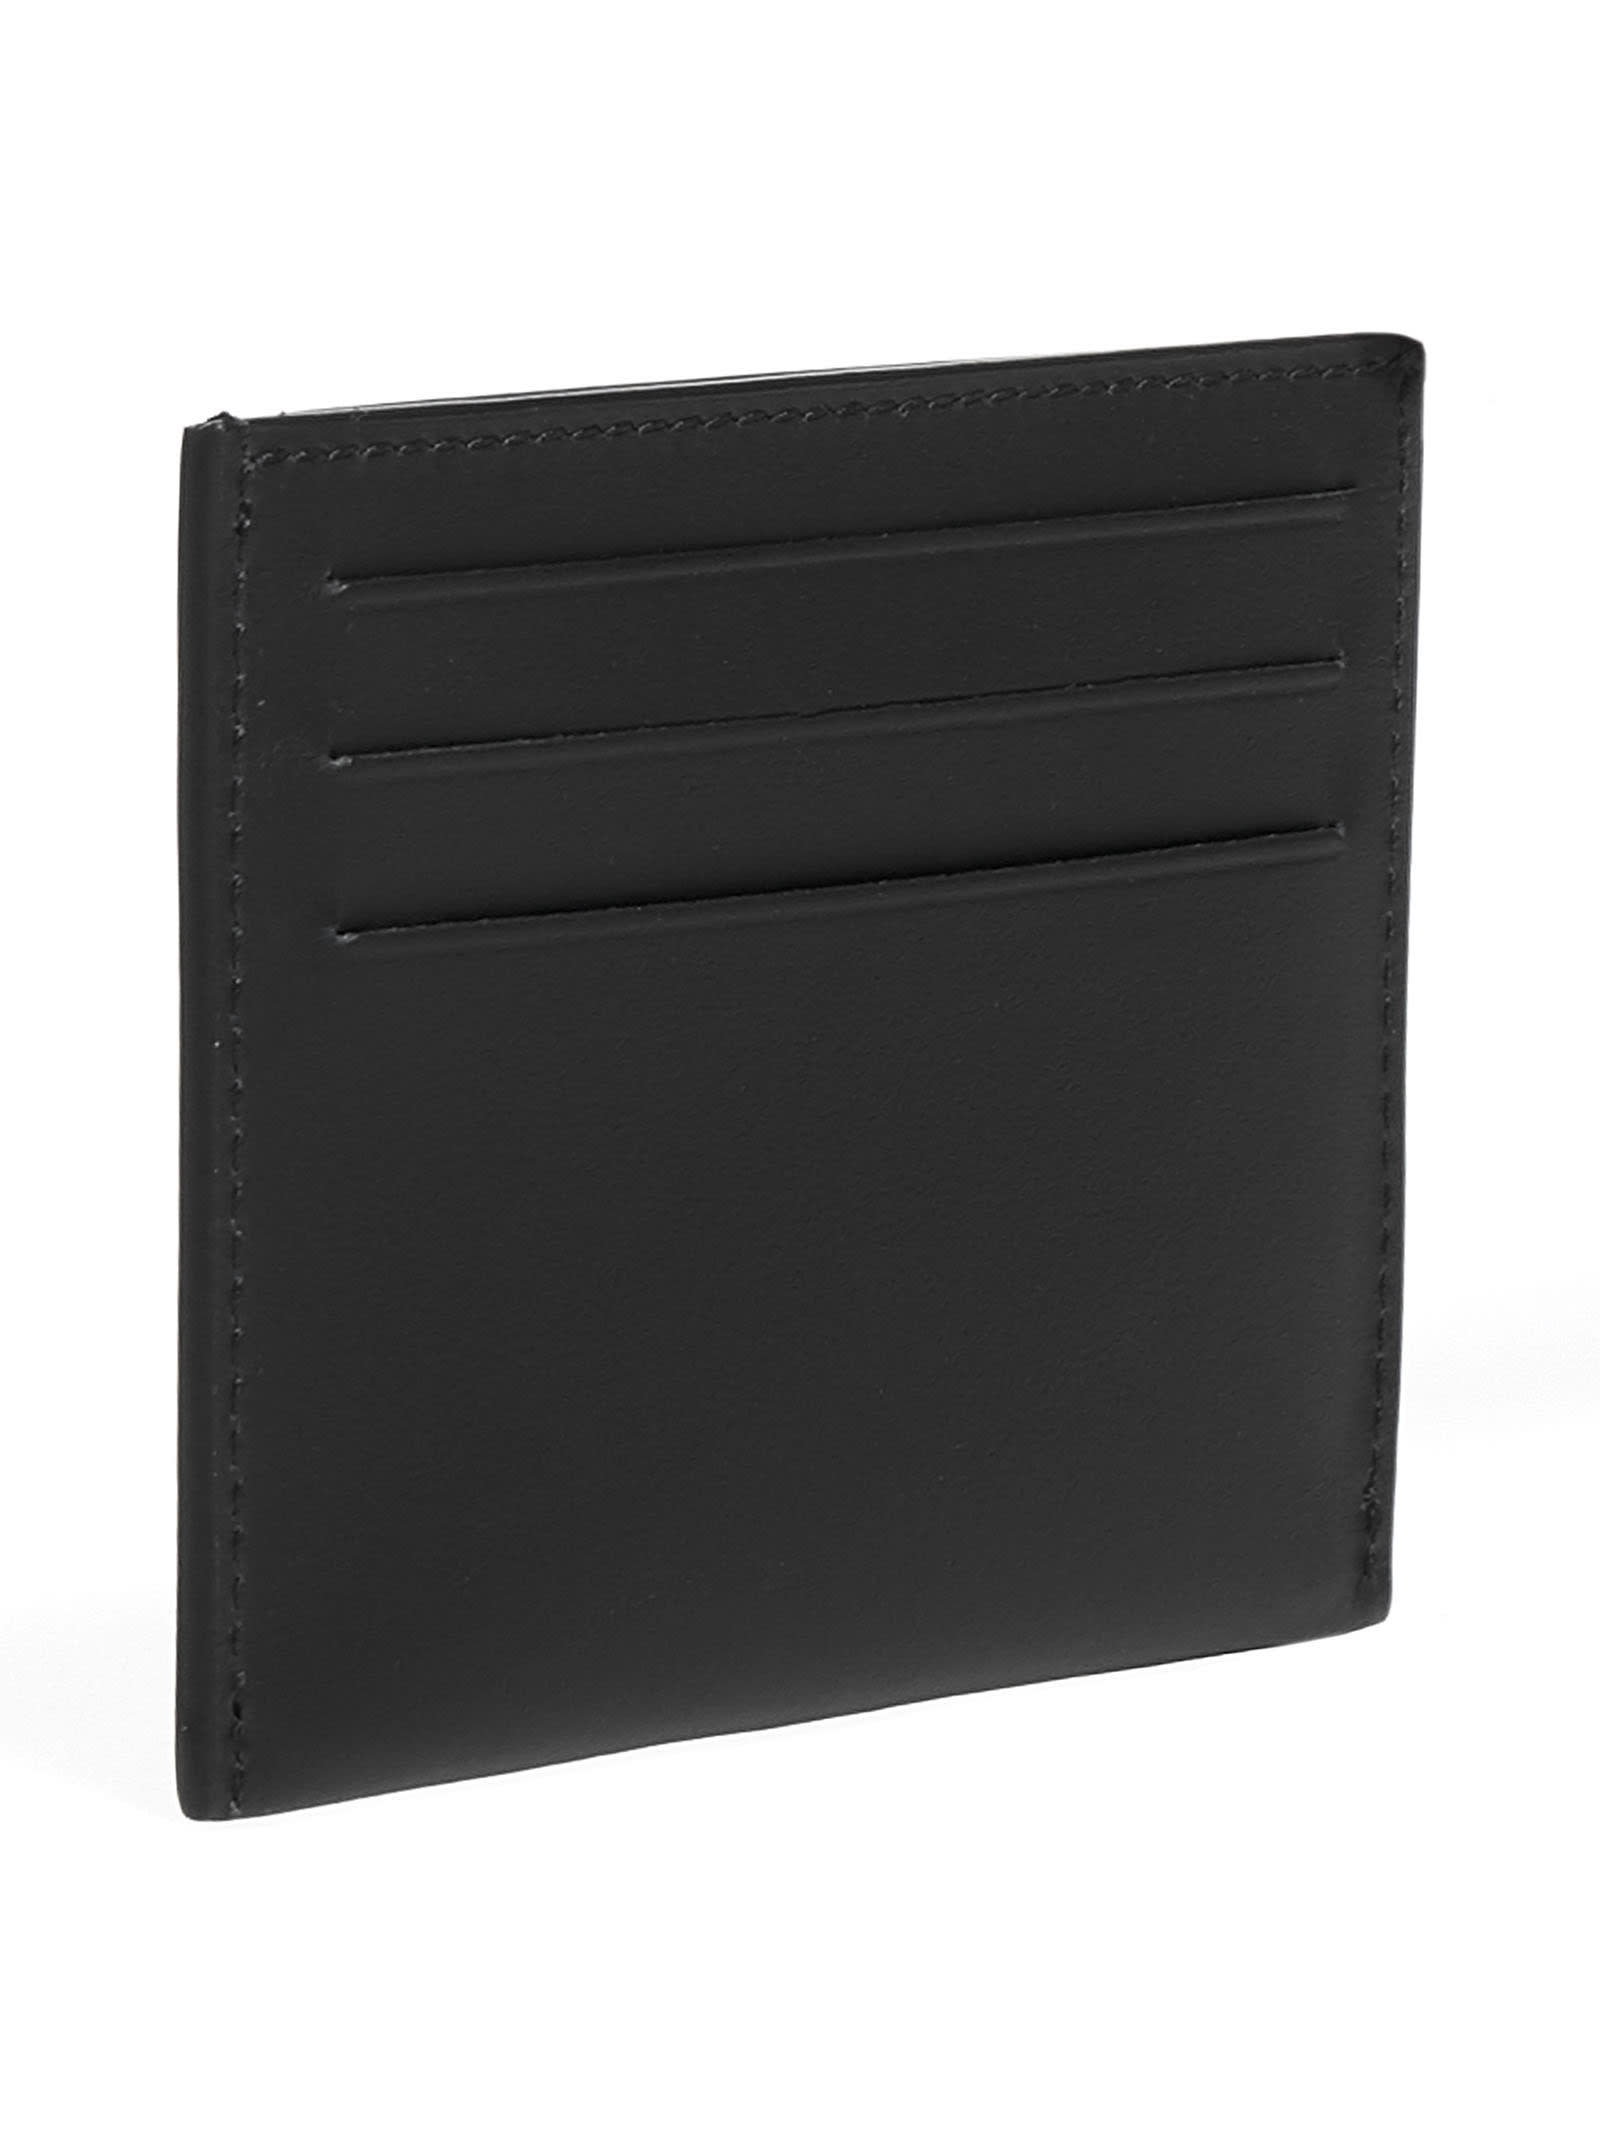 Cheap And Nice Givenchy Wallet